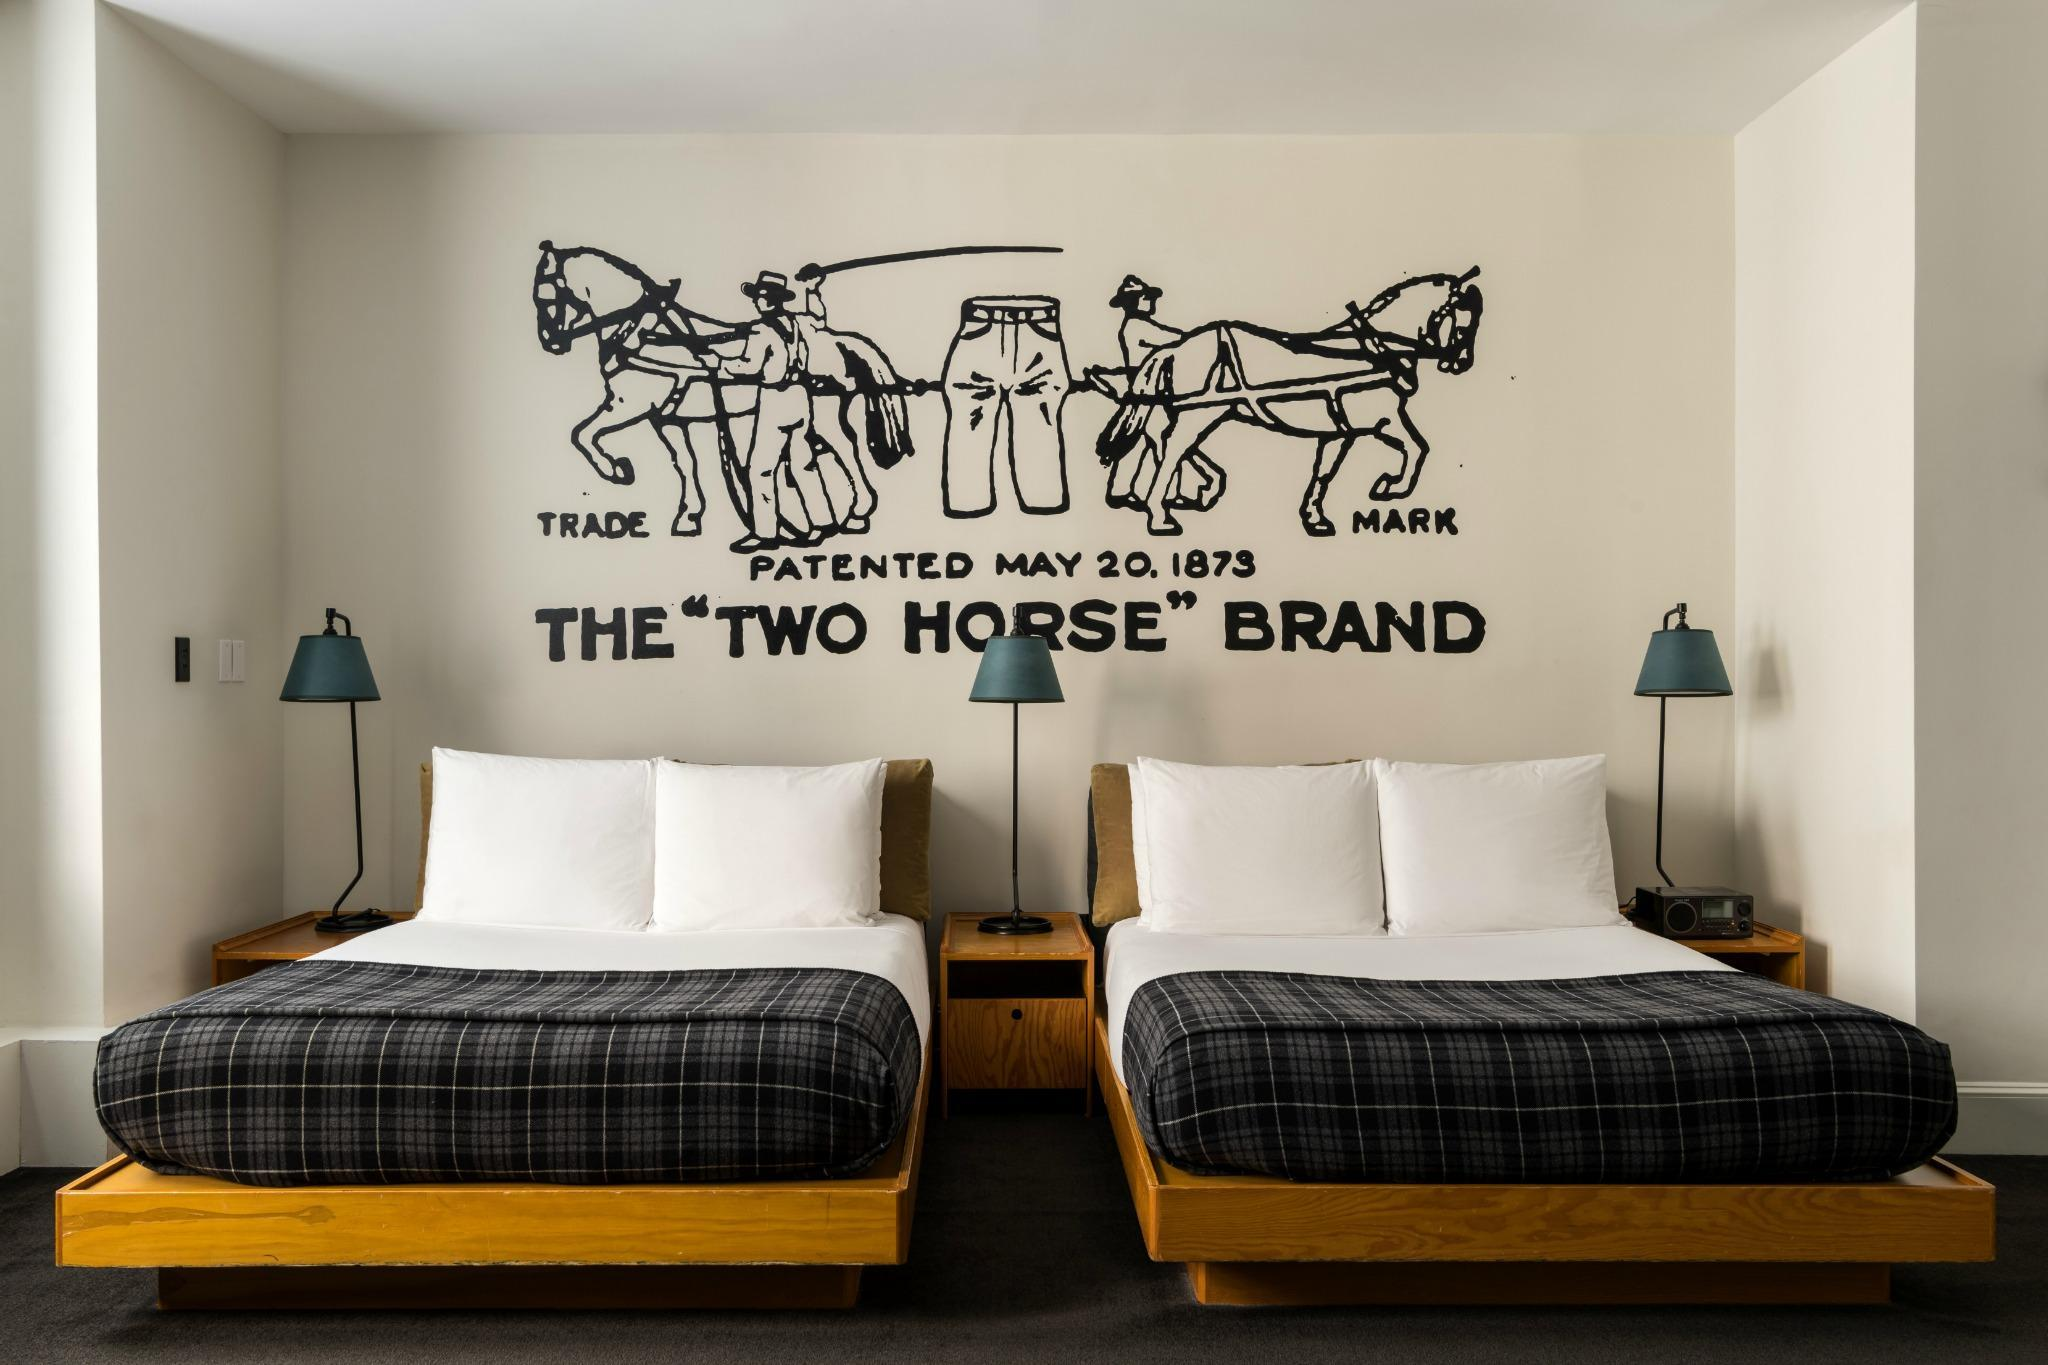 best price on ace hotel in new york ny reviews see photos and details